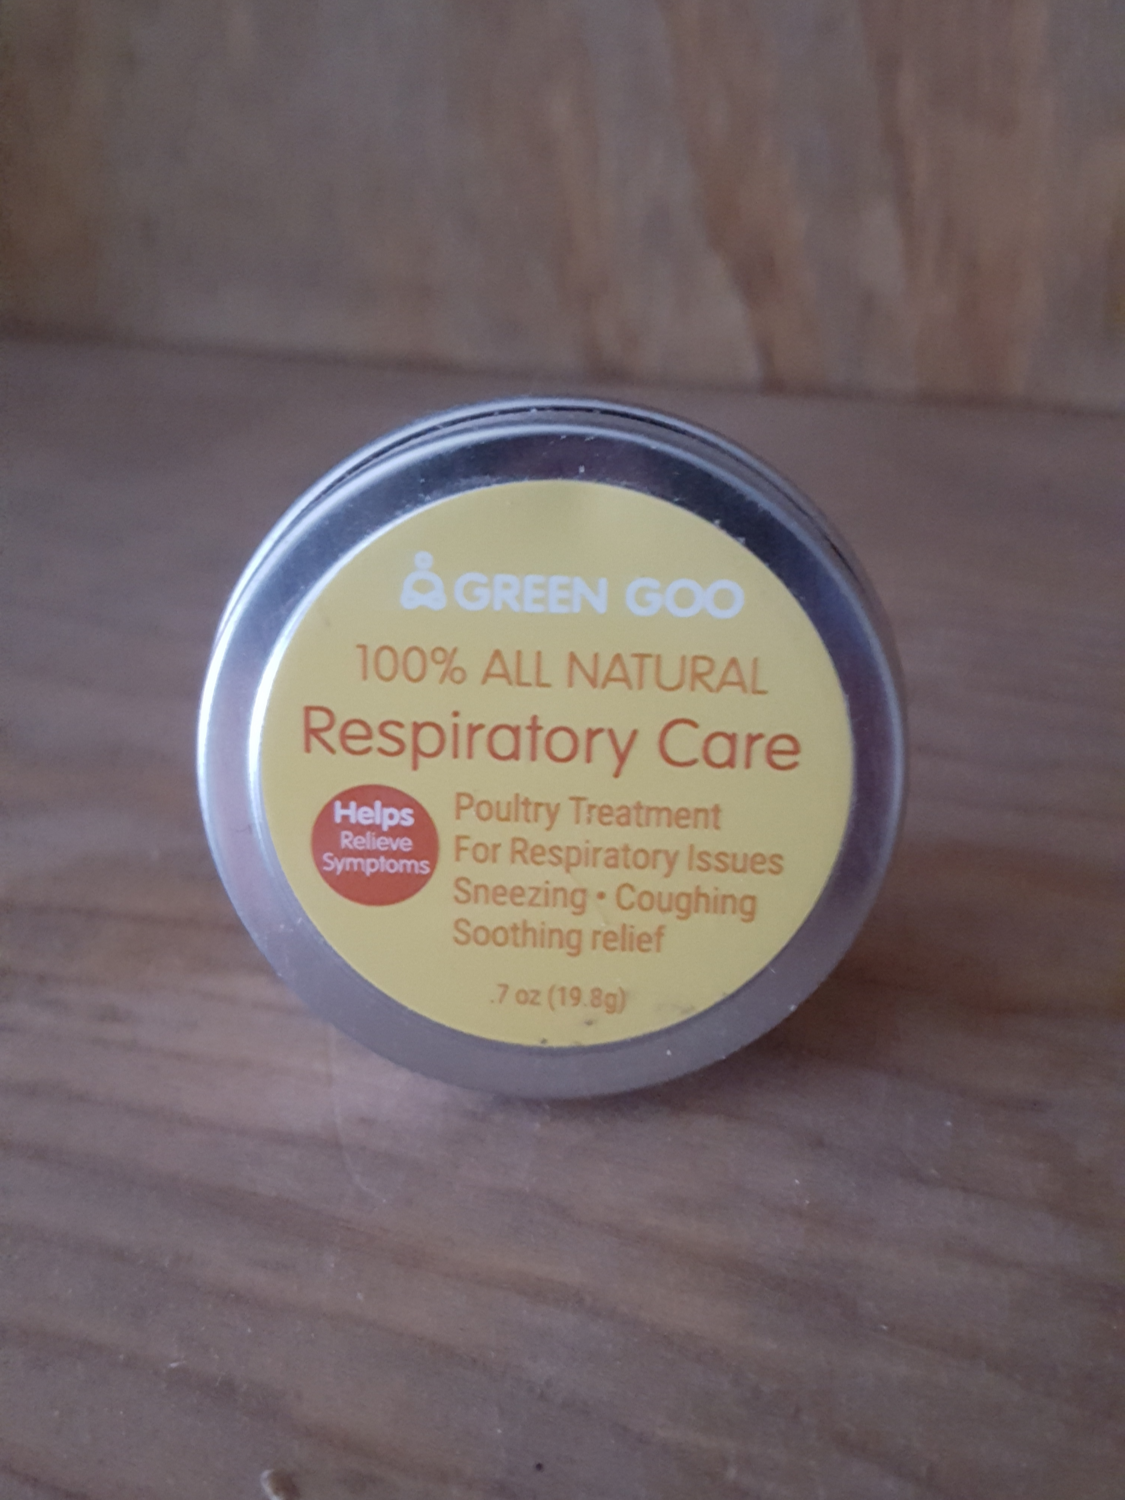 Green Goo Poultry Respiratory Care, 0.7 oz.